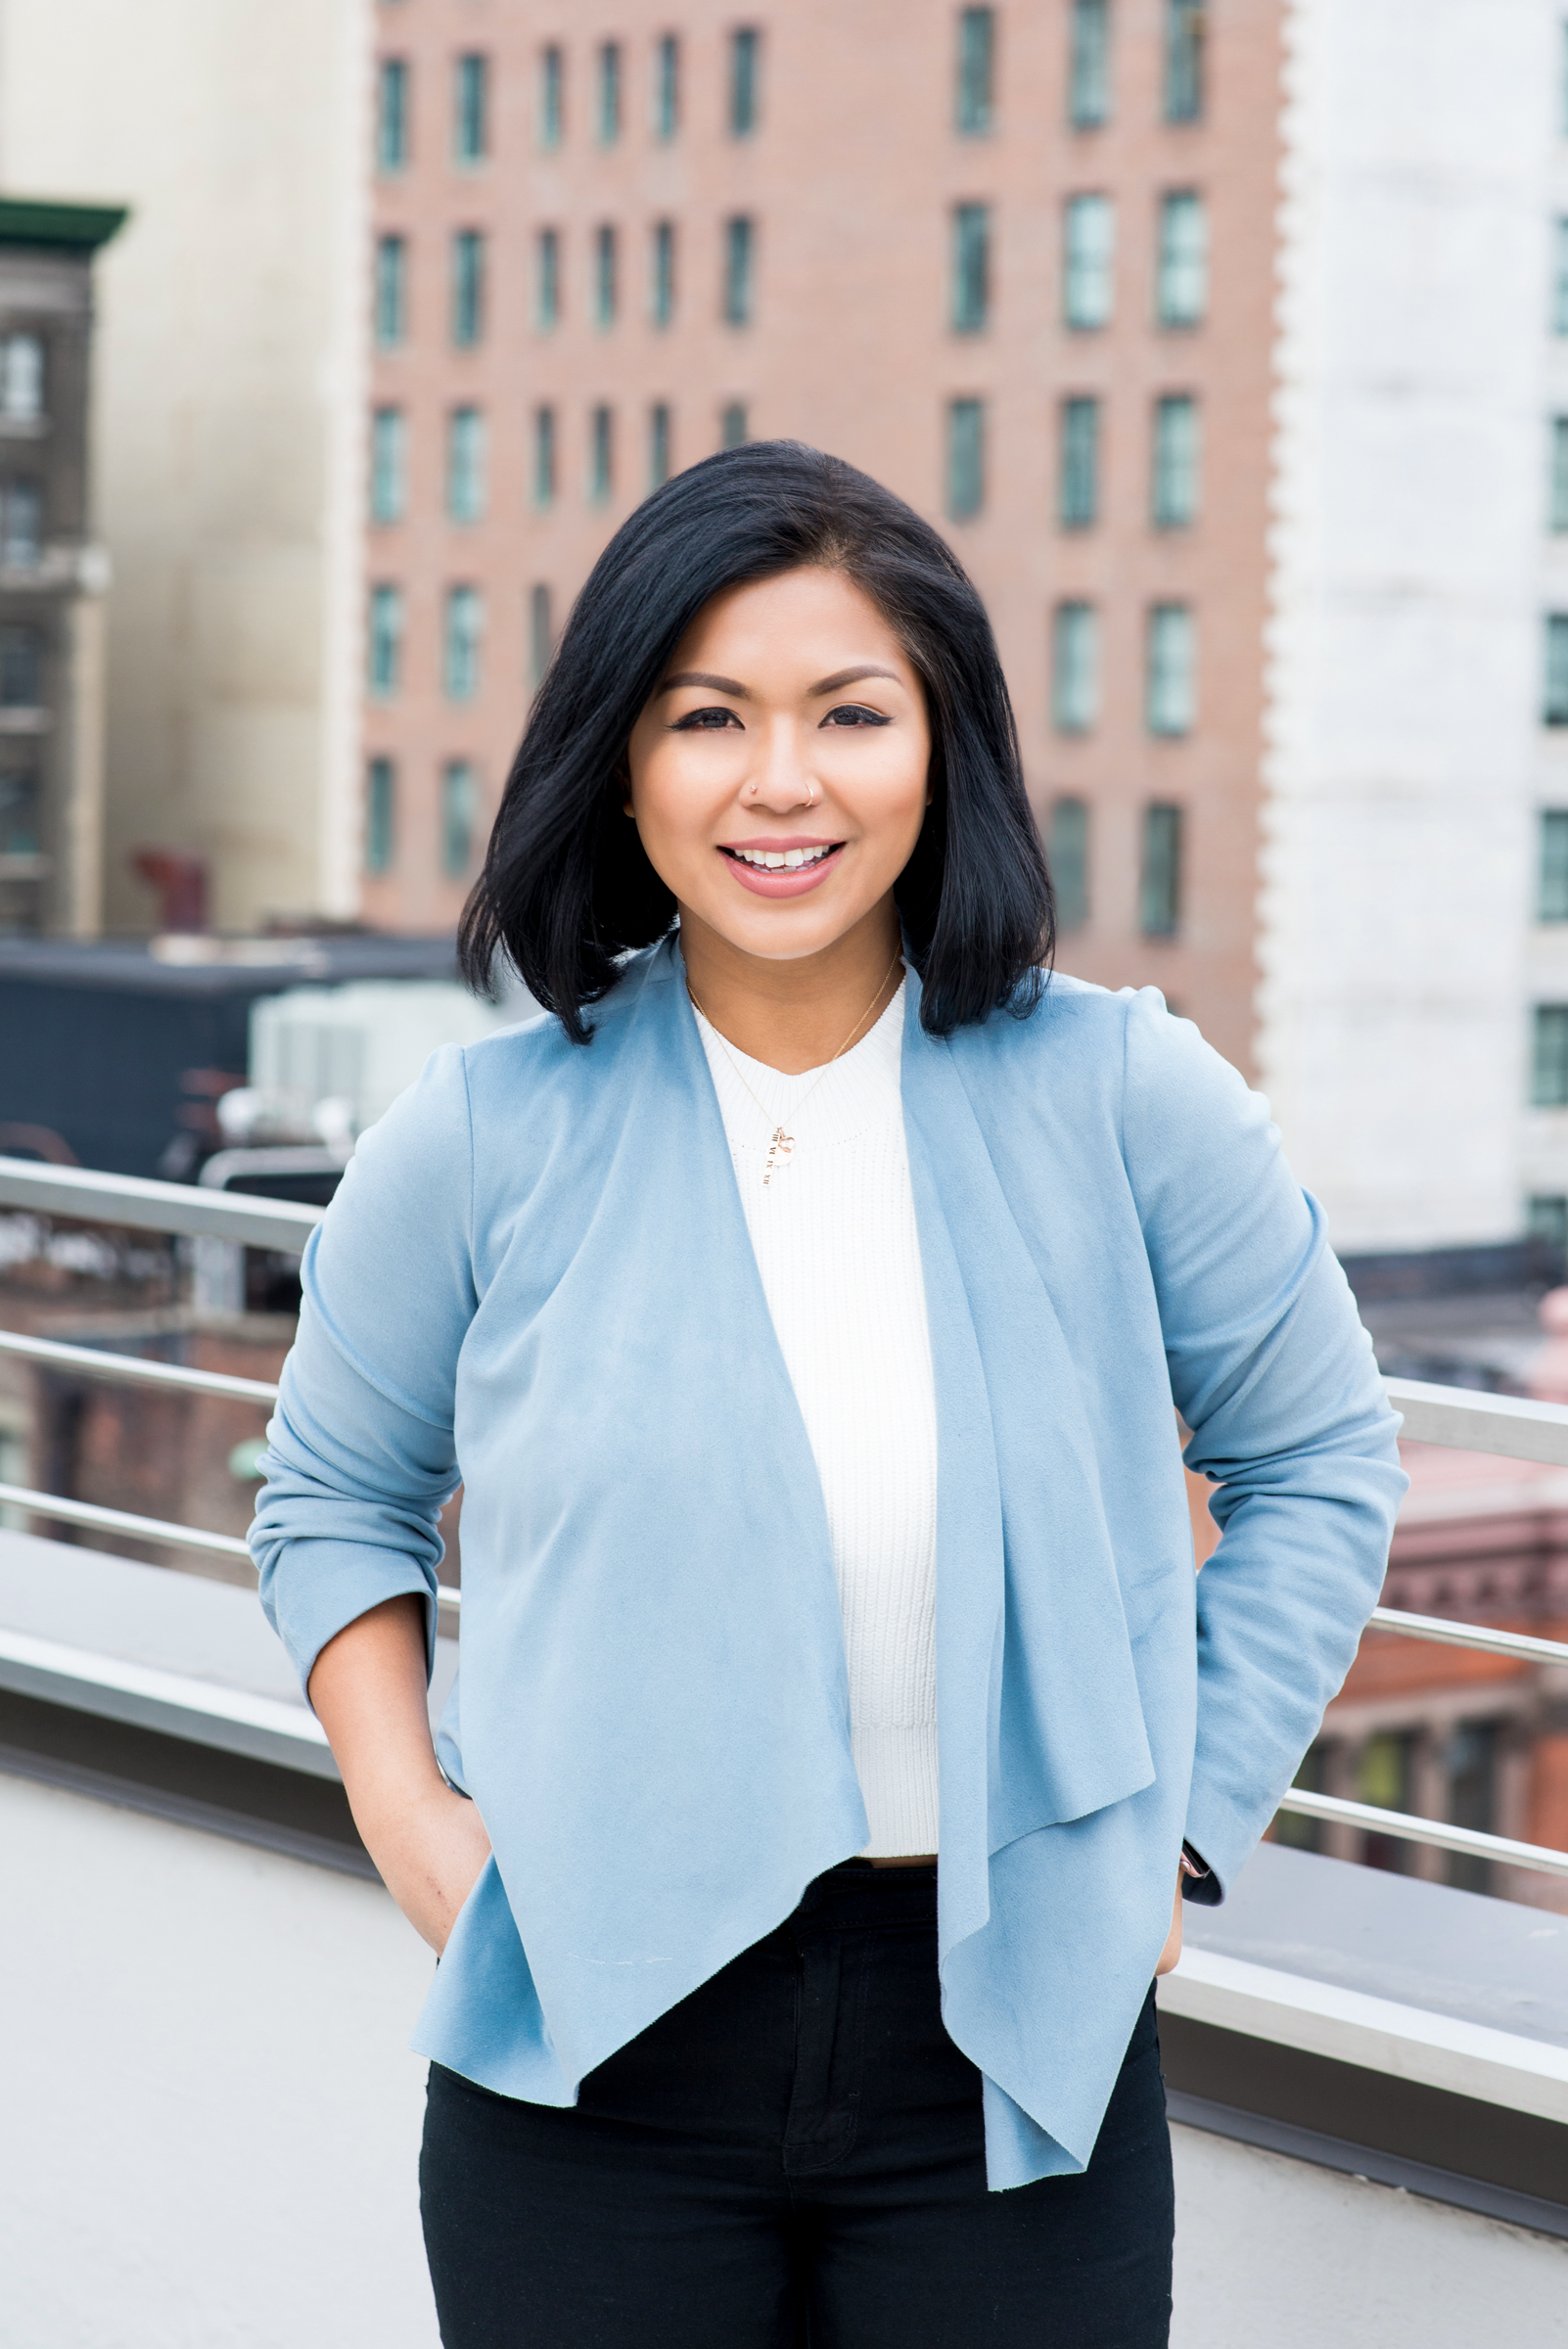 https://femalefounders.org/wp-content/uploads/2020/10/Cat-Hernandez.jpg